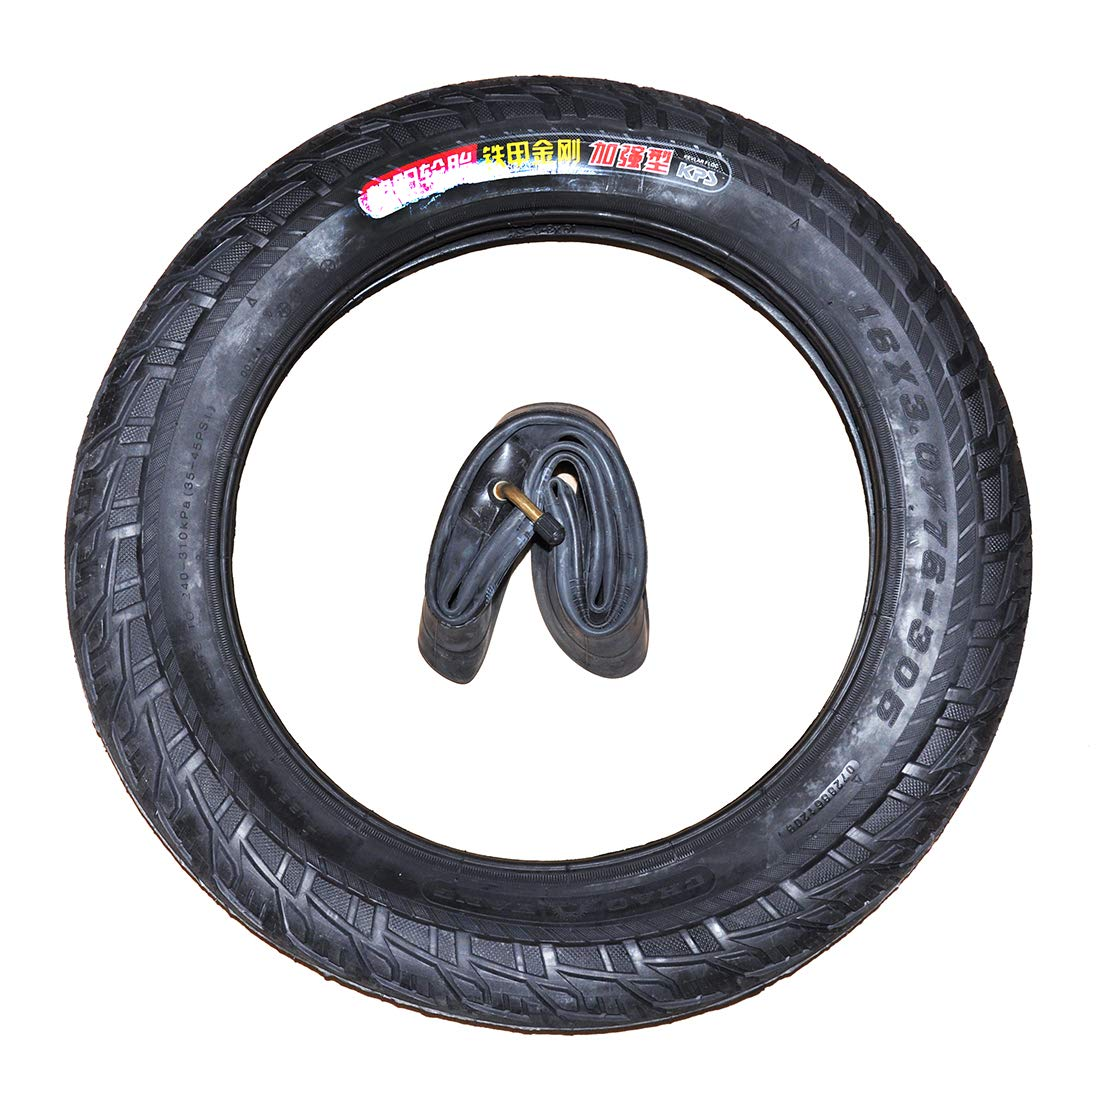 16x3.0 Electric Bicycle Spare Parts Inner Tube With Vent Valve Stem Butyl Rubber